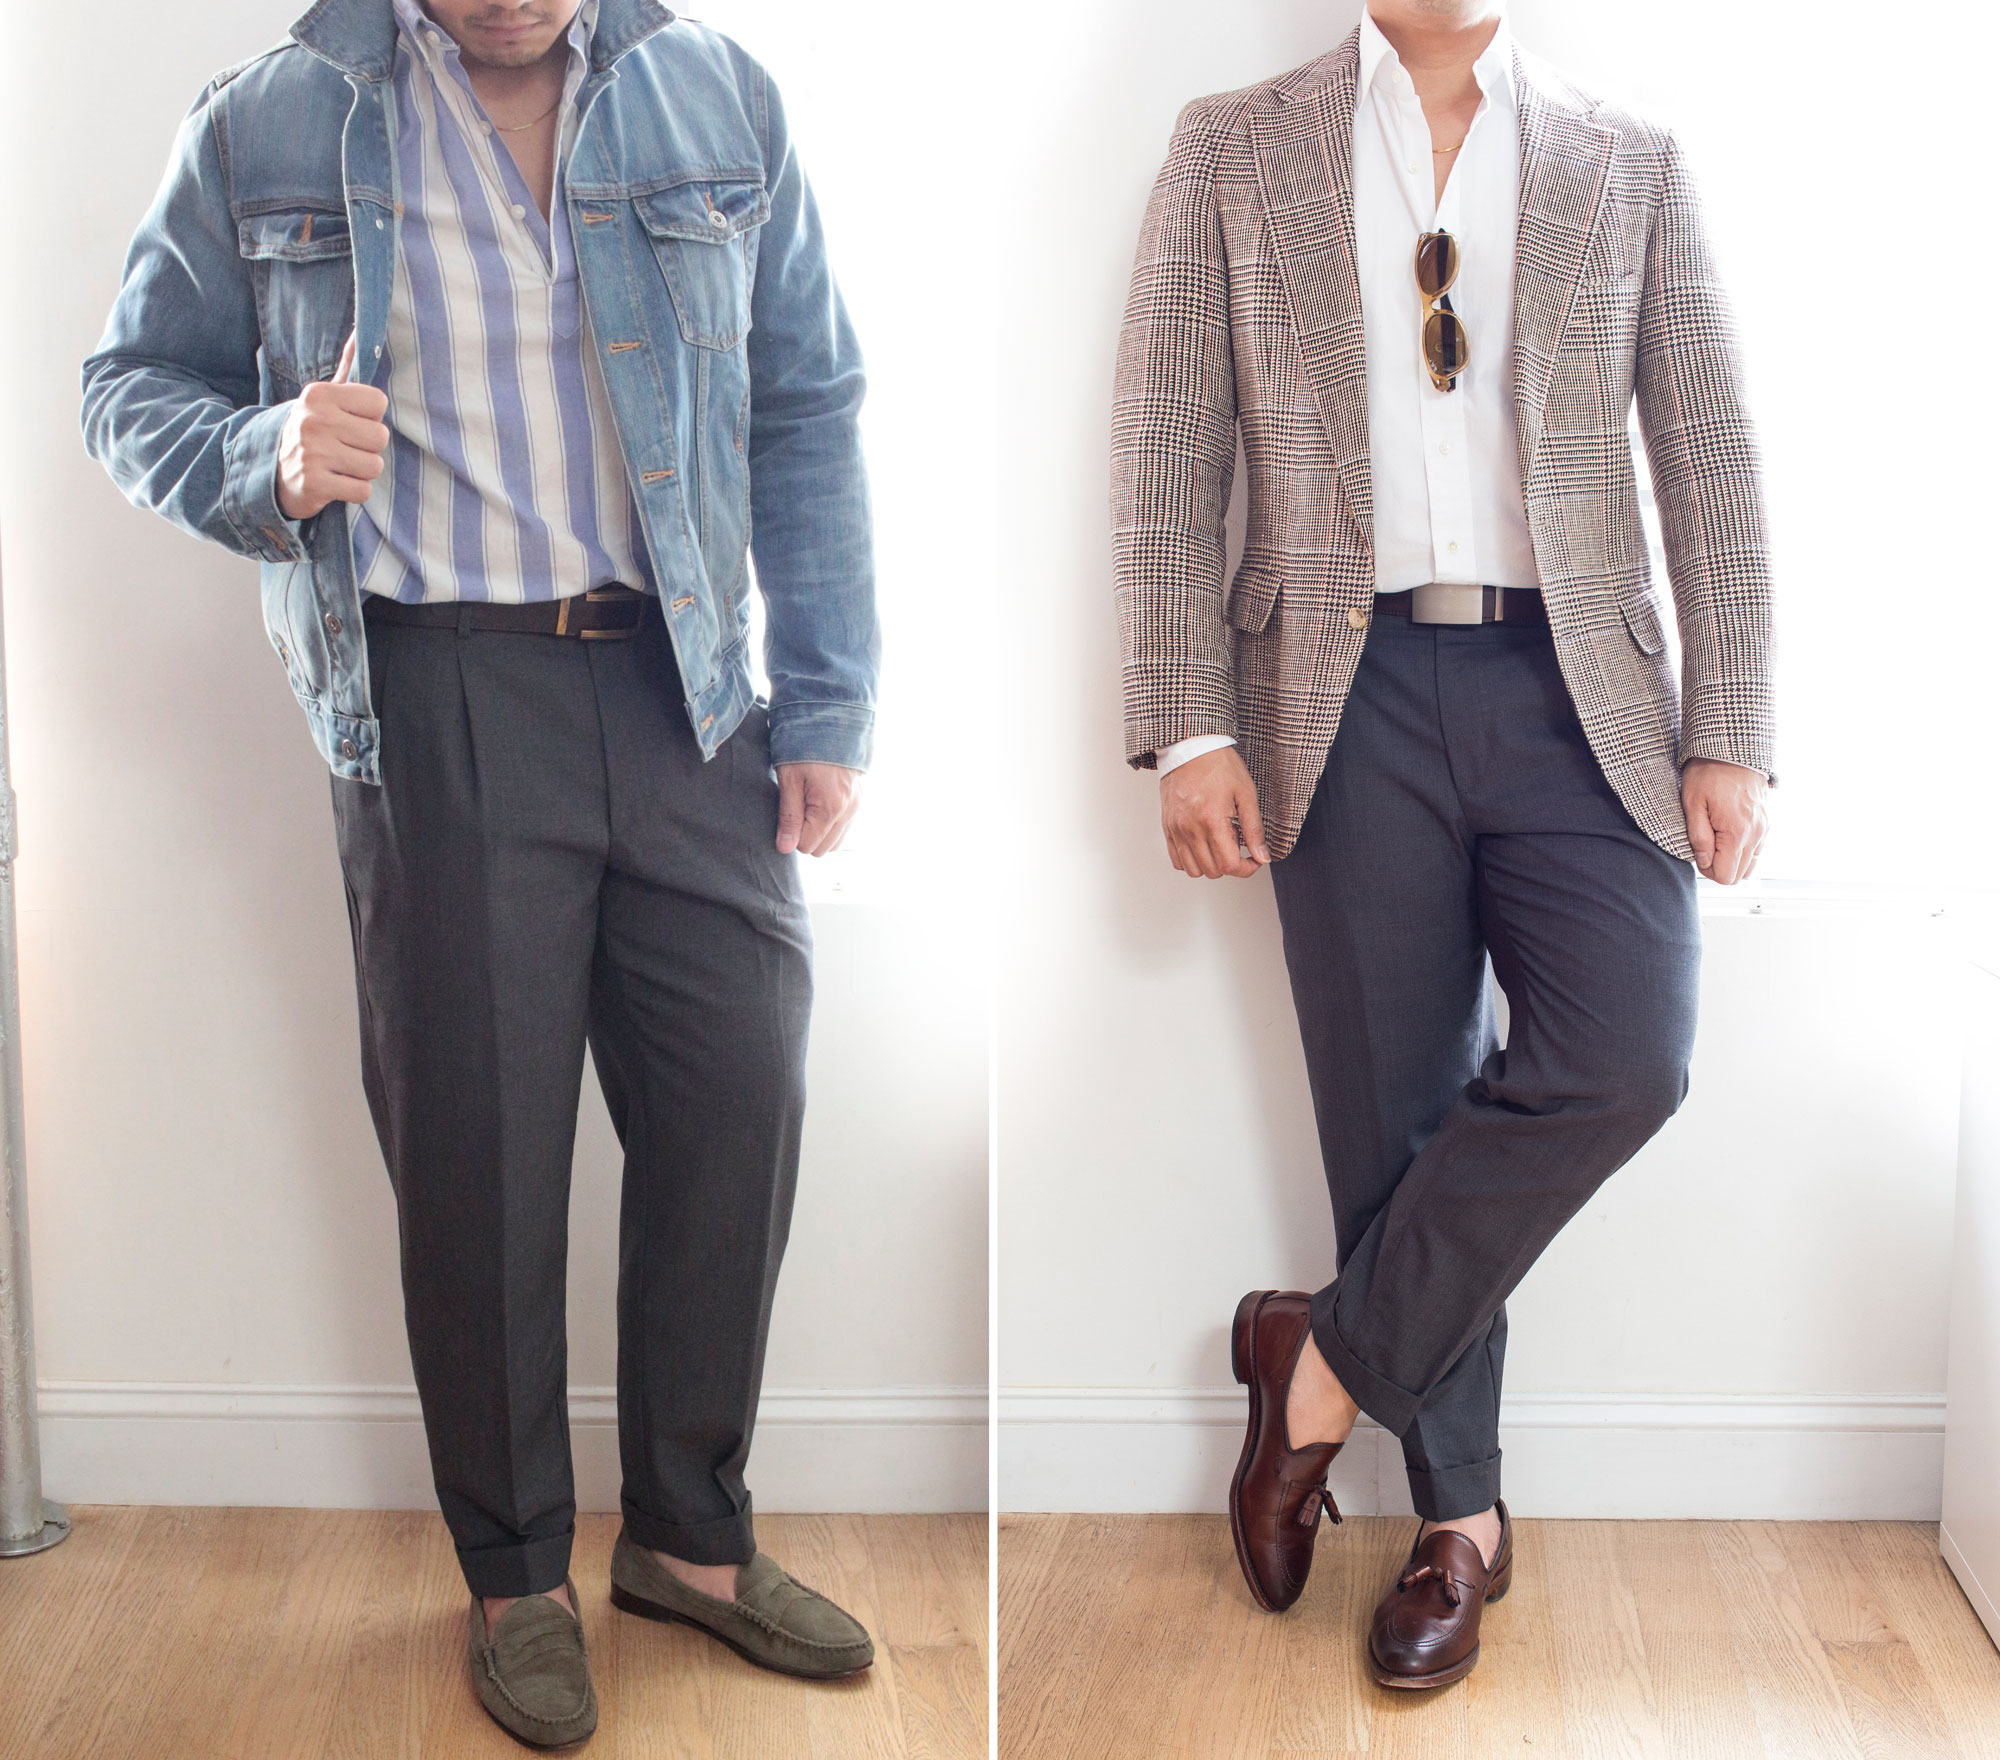 man wearing grey pants with a denim jacket and with a suit jacket